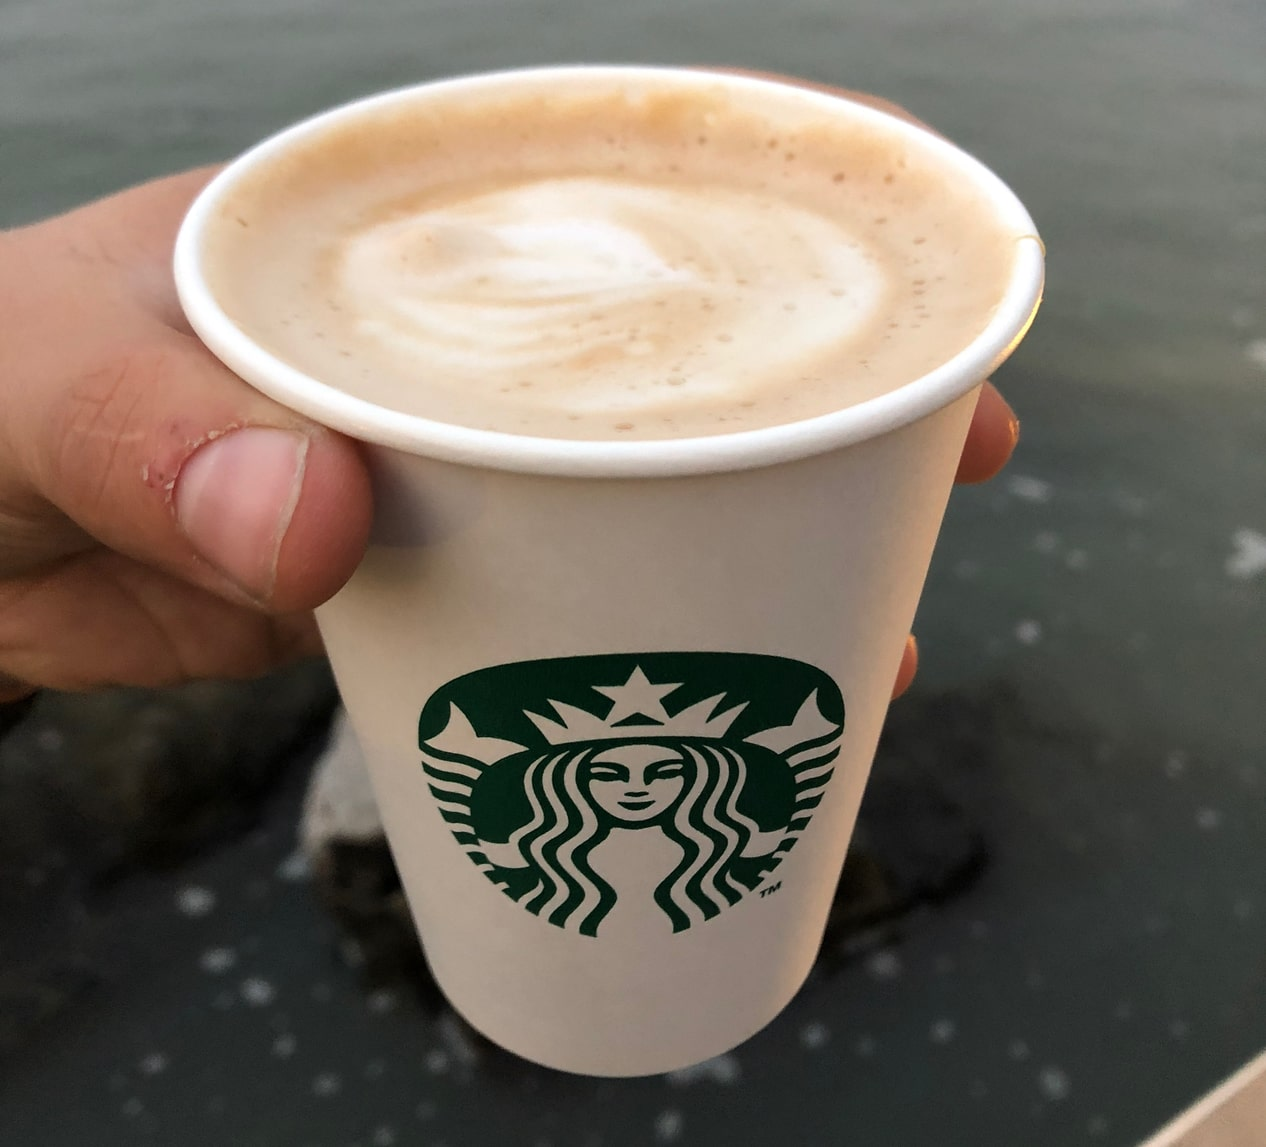 Starbucks Is Serving Up Beer Flavored Lattes In China